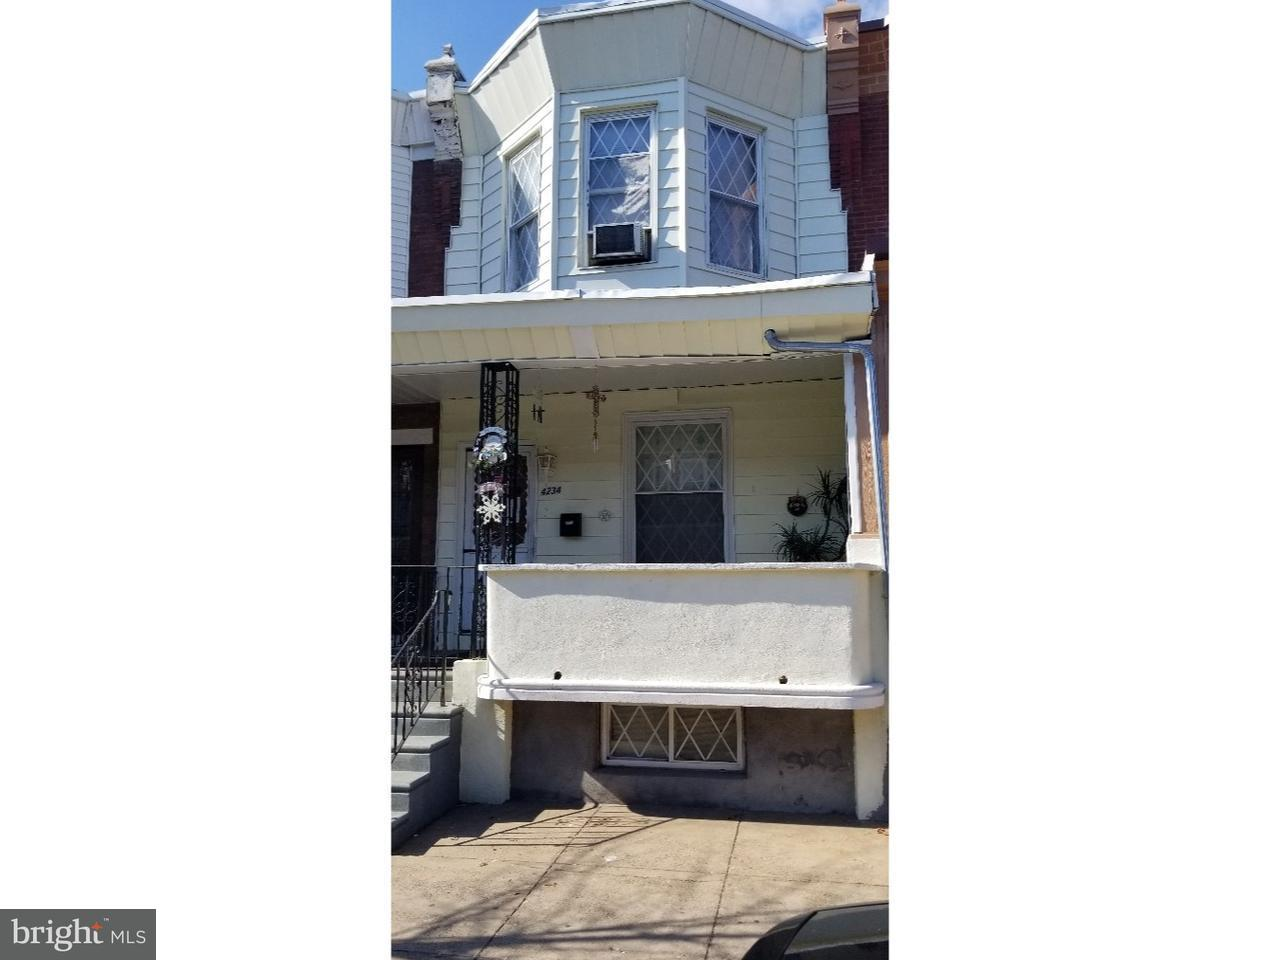 4234 N 7TH Philadelphia, PA 19140